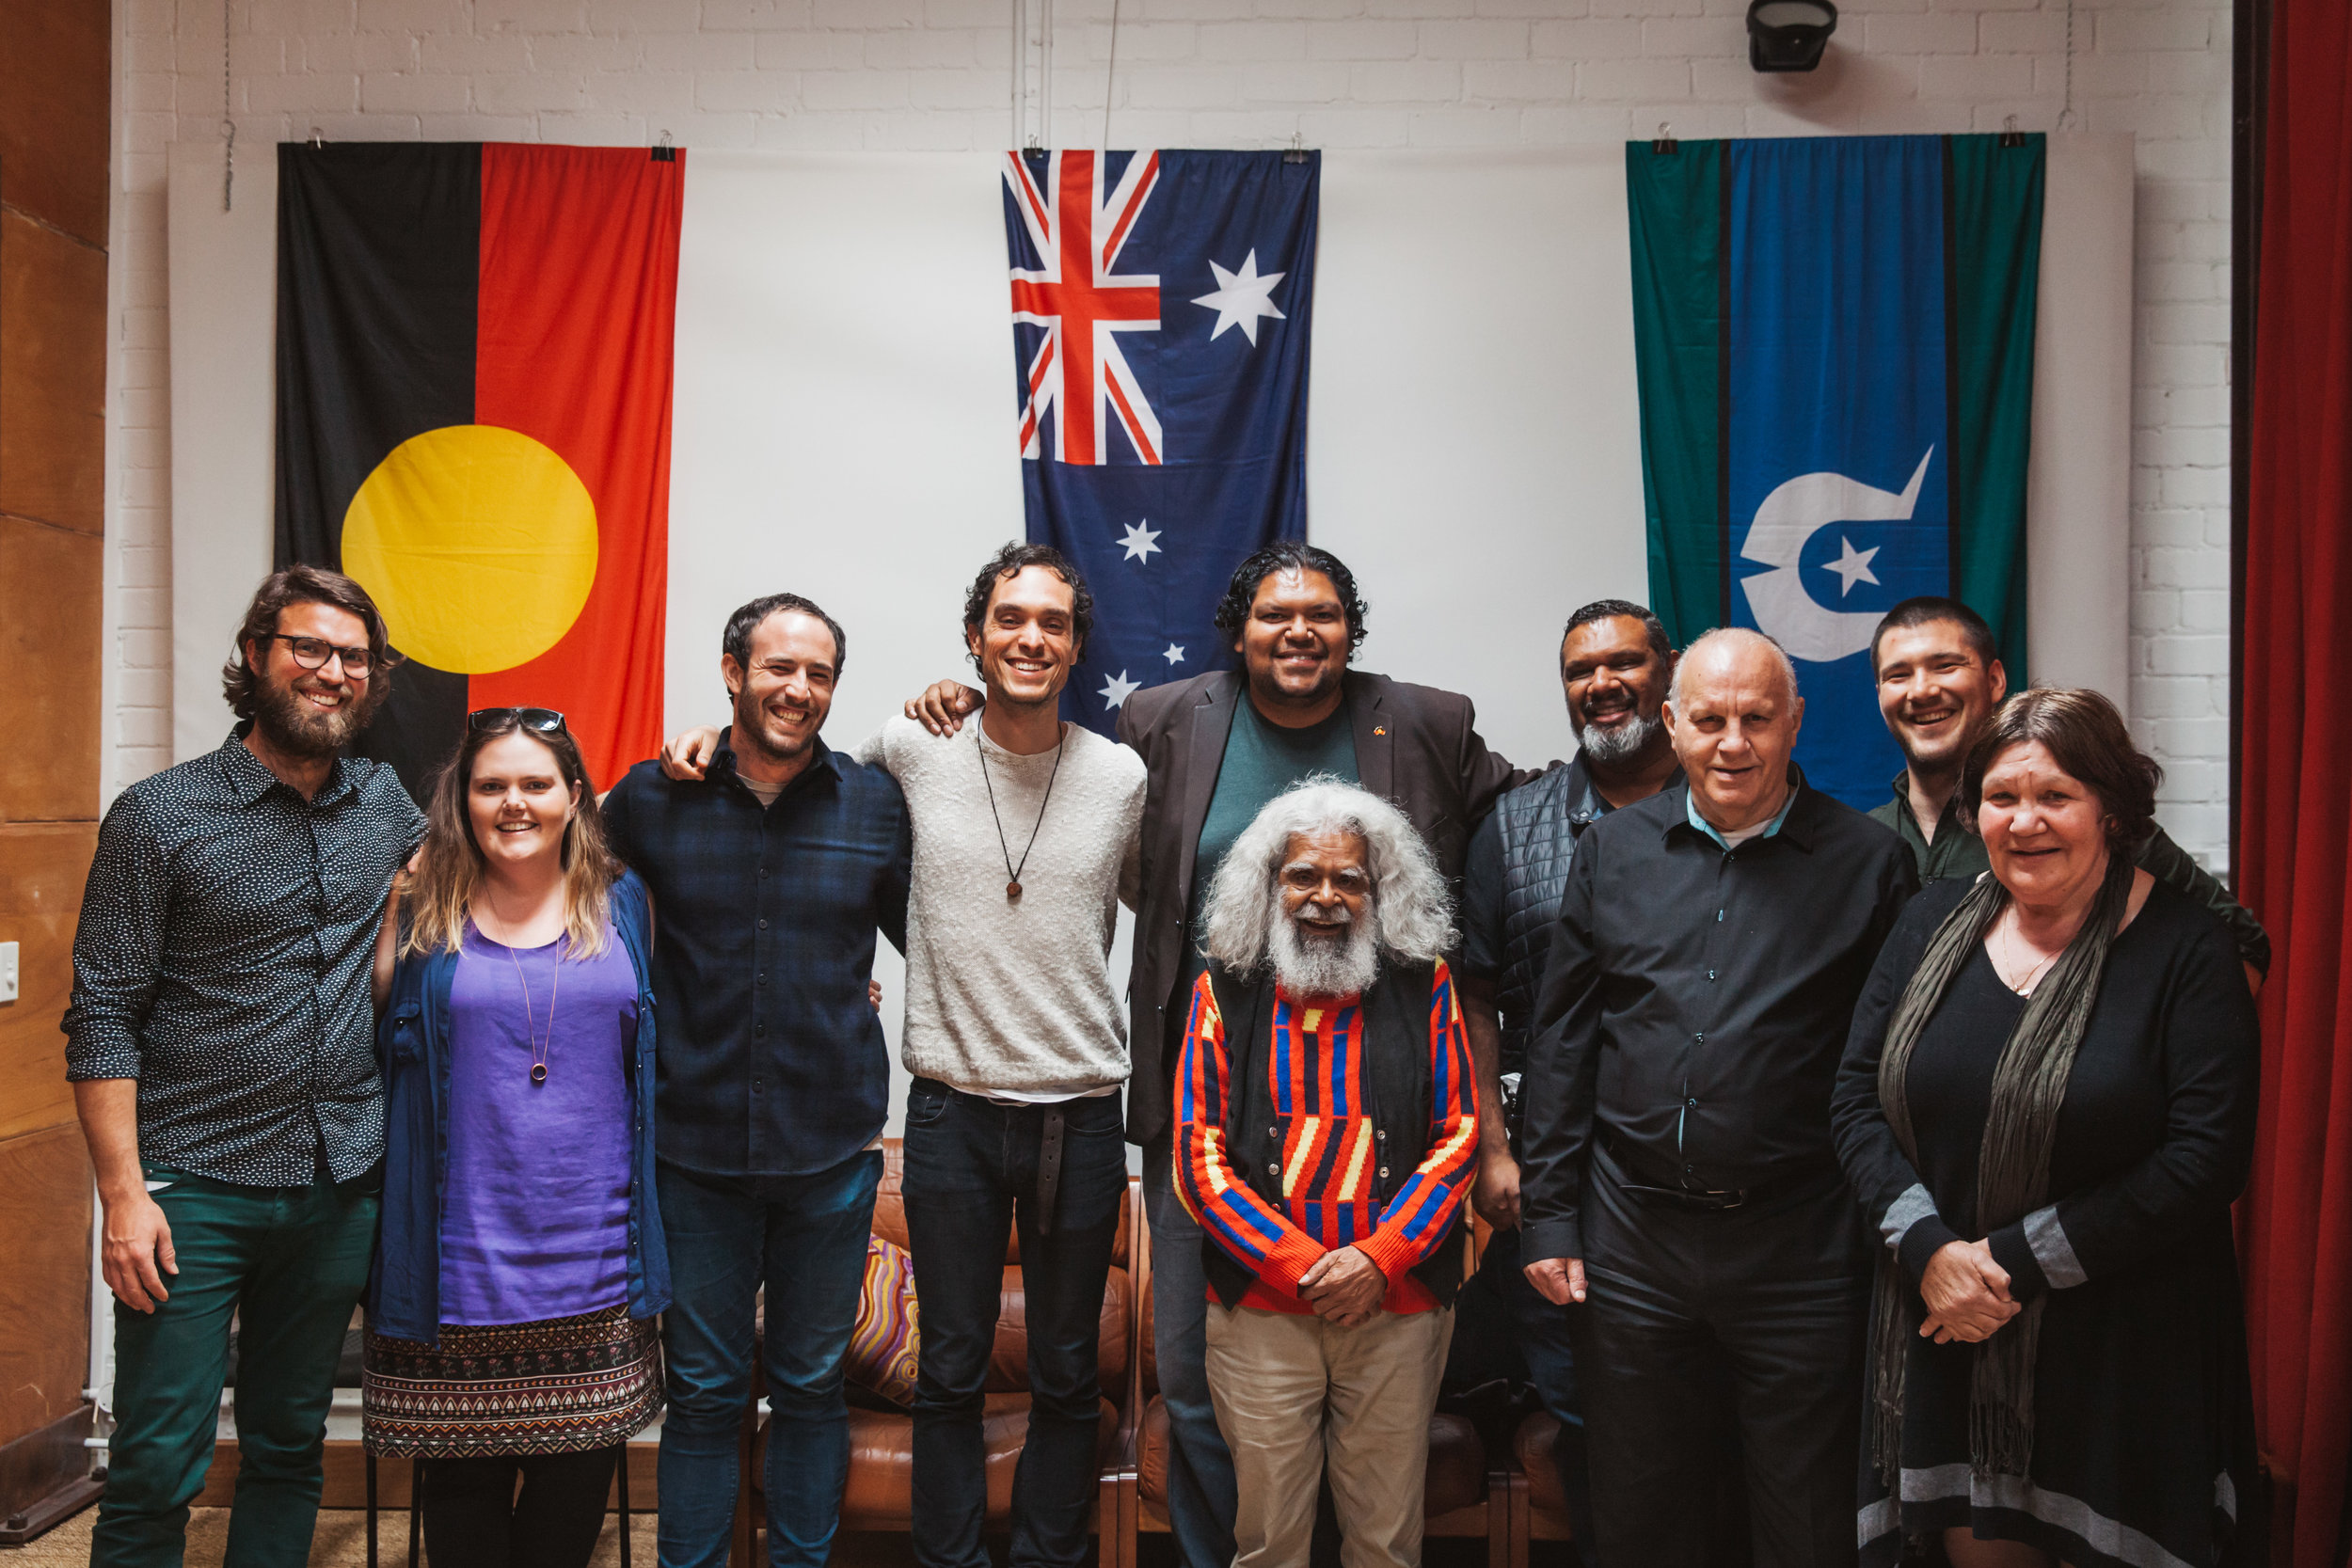 What an incredible evening it was at the  @yarnaustralia  Narrm Melbourne Launch here at  @merringstudio yesterday. Thank you to the team, elders and guest speakers for telling their story and contributing to a memorable night of learning, culture & conversation. Thank you also to the Wurundjeri elders for welcoming us all to this Country.  #yarnaustralia   #community   #culture  #conversation   #storytelling   #indigenous  #aboriginal   #torresstraitisland   #australia  #sharedhistory   #Narrm   #Naarm  #Melbourne   #Northcote   #deadly  #jackcharles   #antonrivette   #reneesleigh  #gordonfranklin   #warrenroberts  #johnwanye   #charliefofo   #kerrihunt